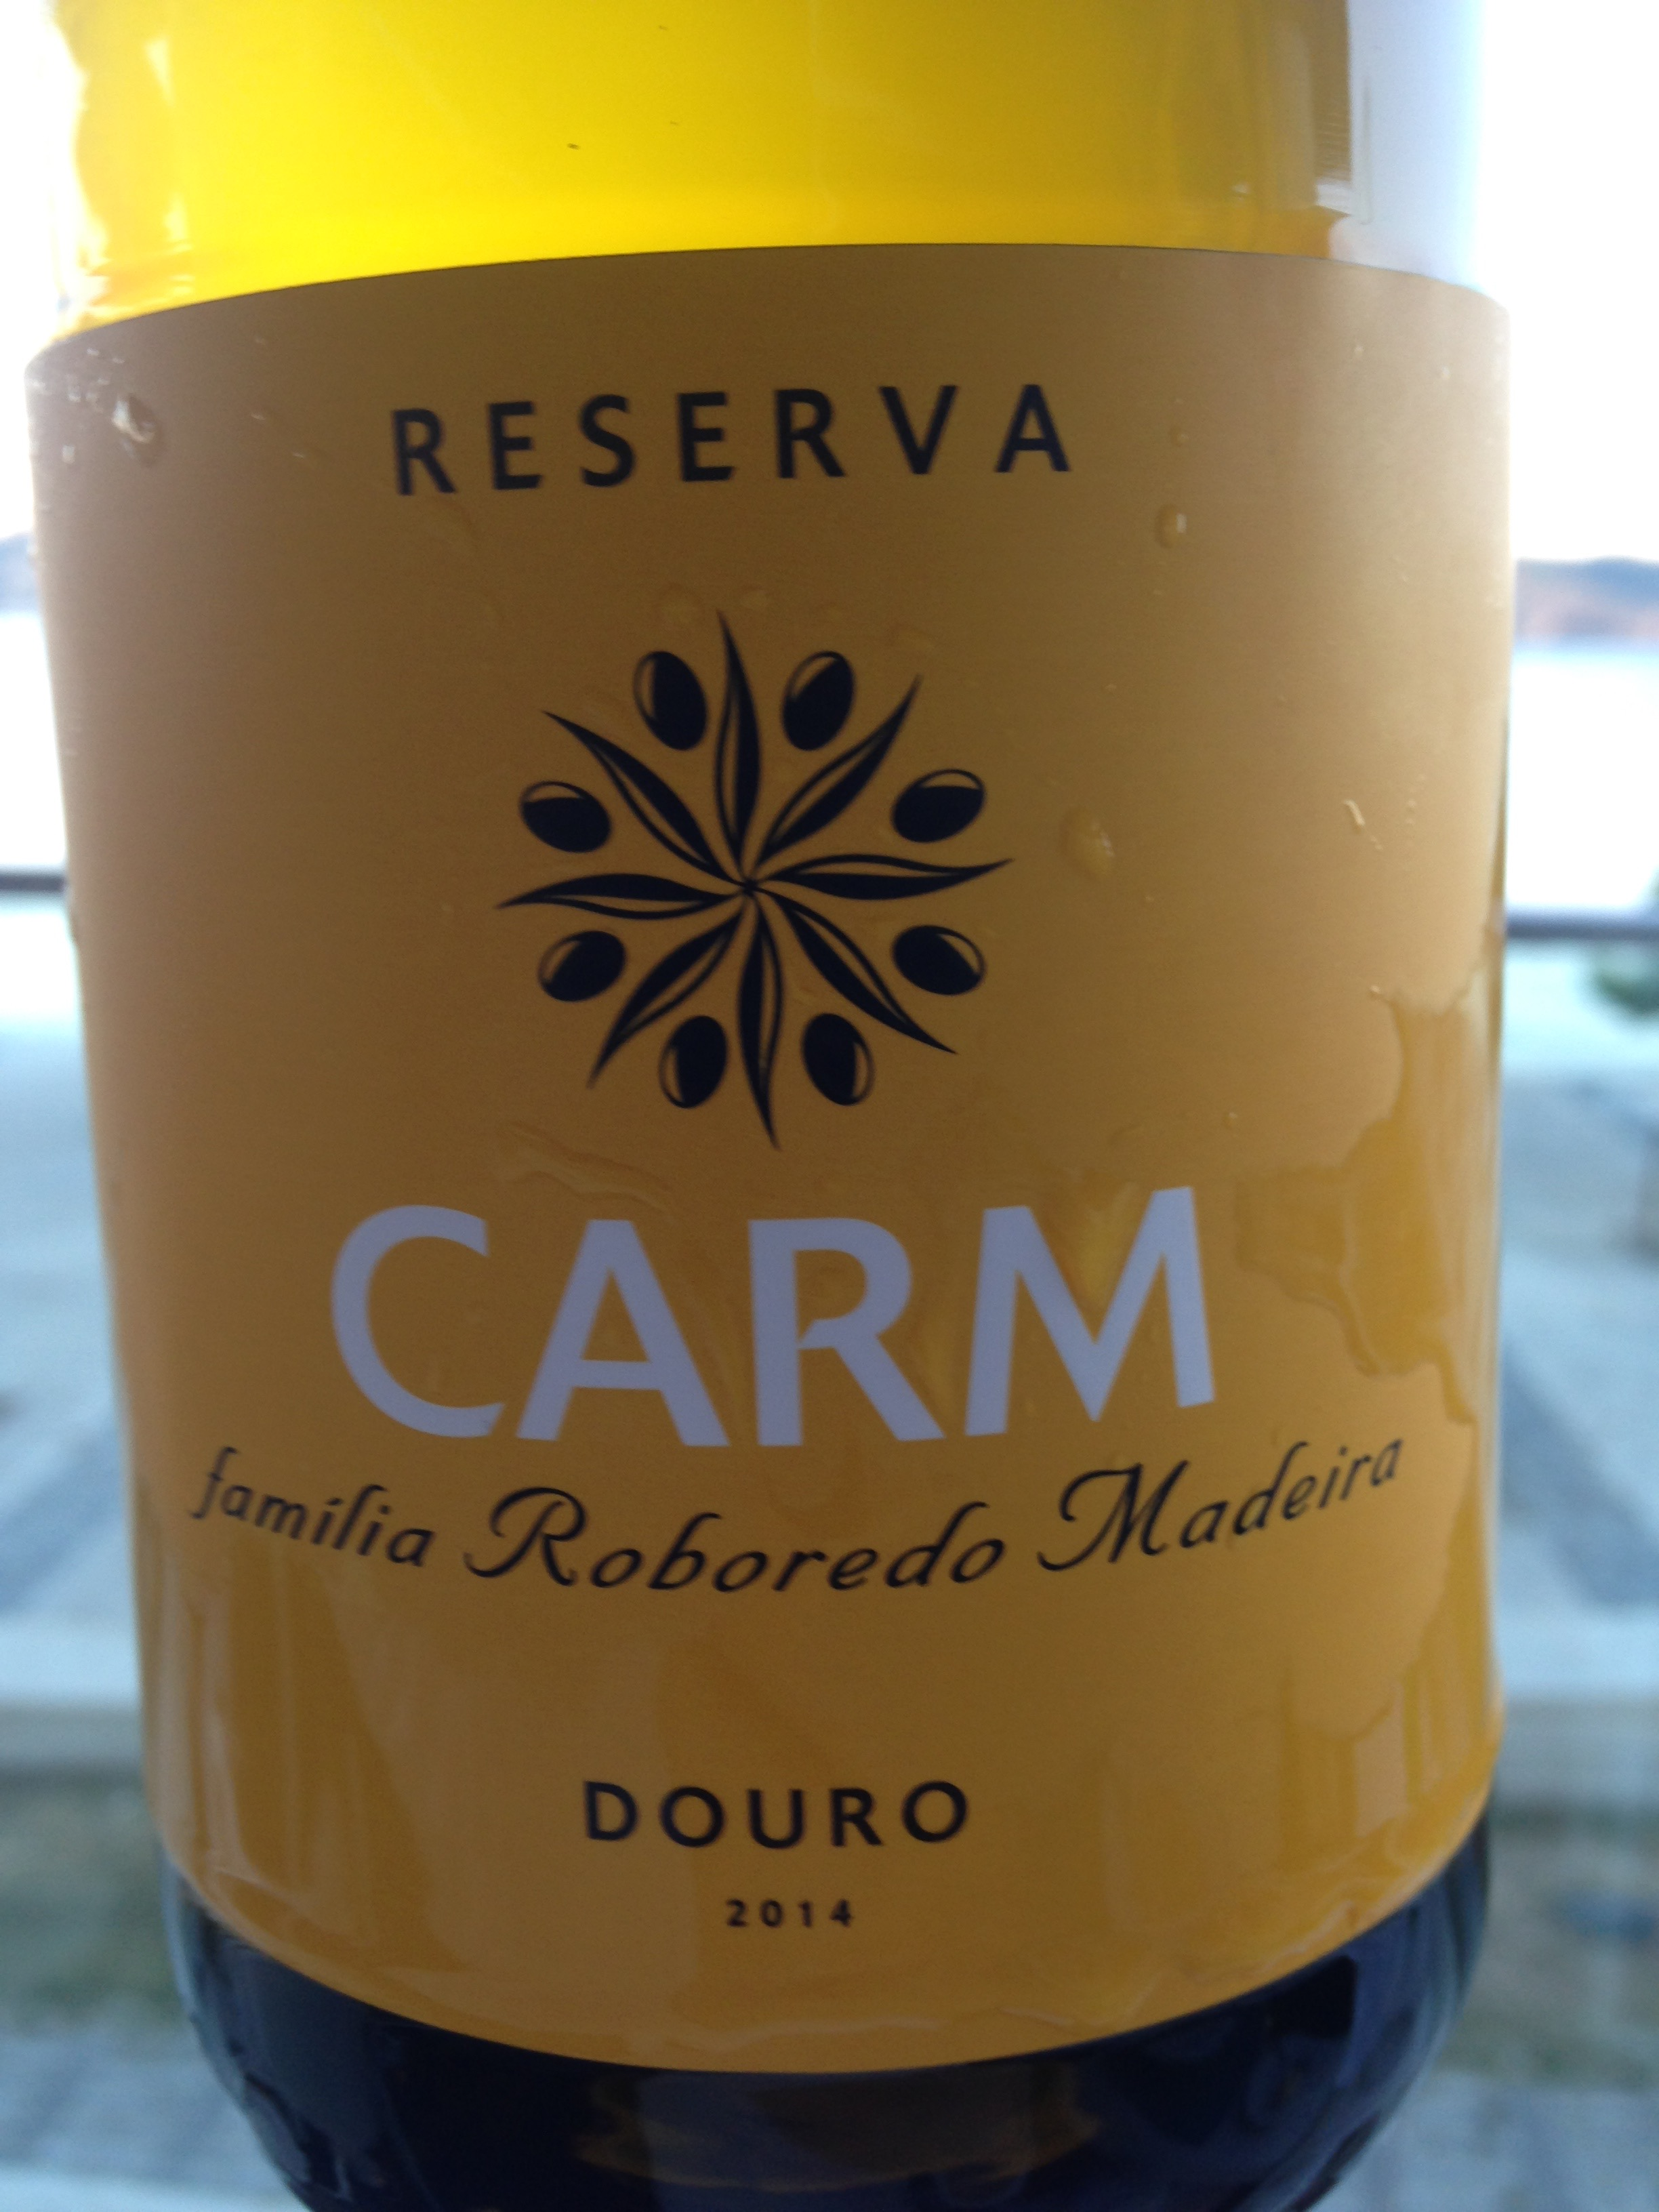 CARM Douro white wine!